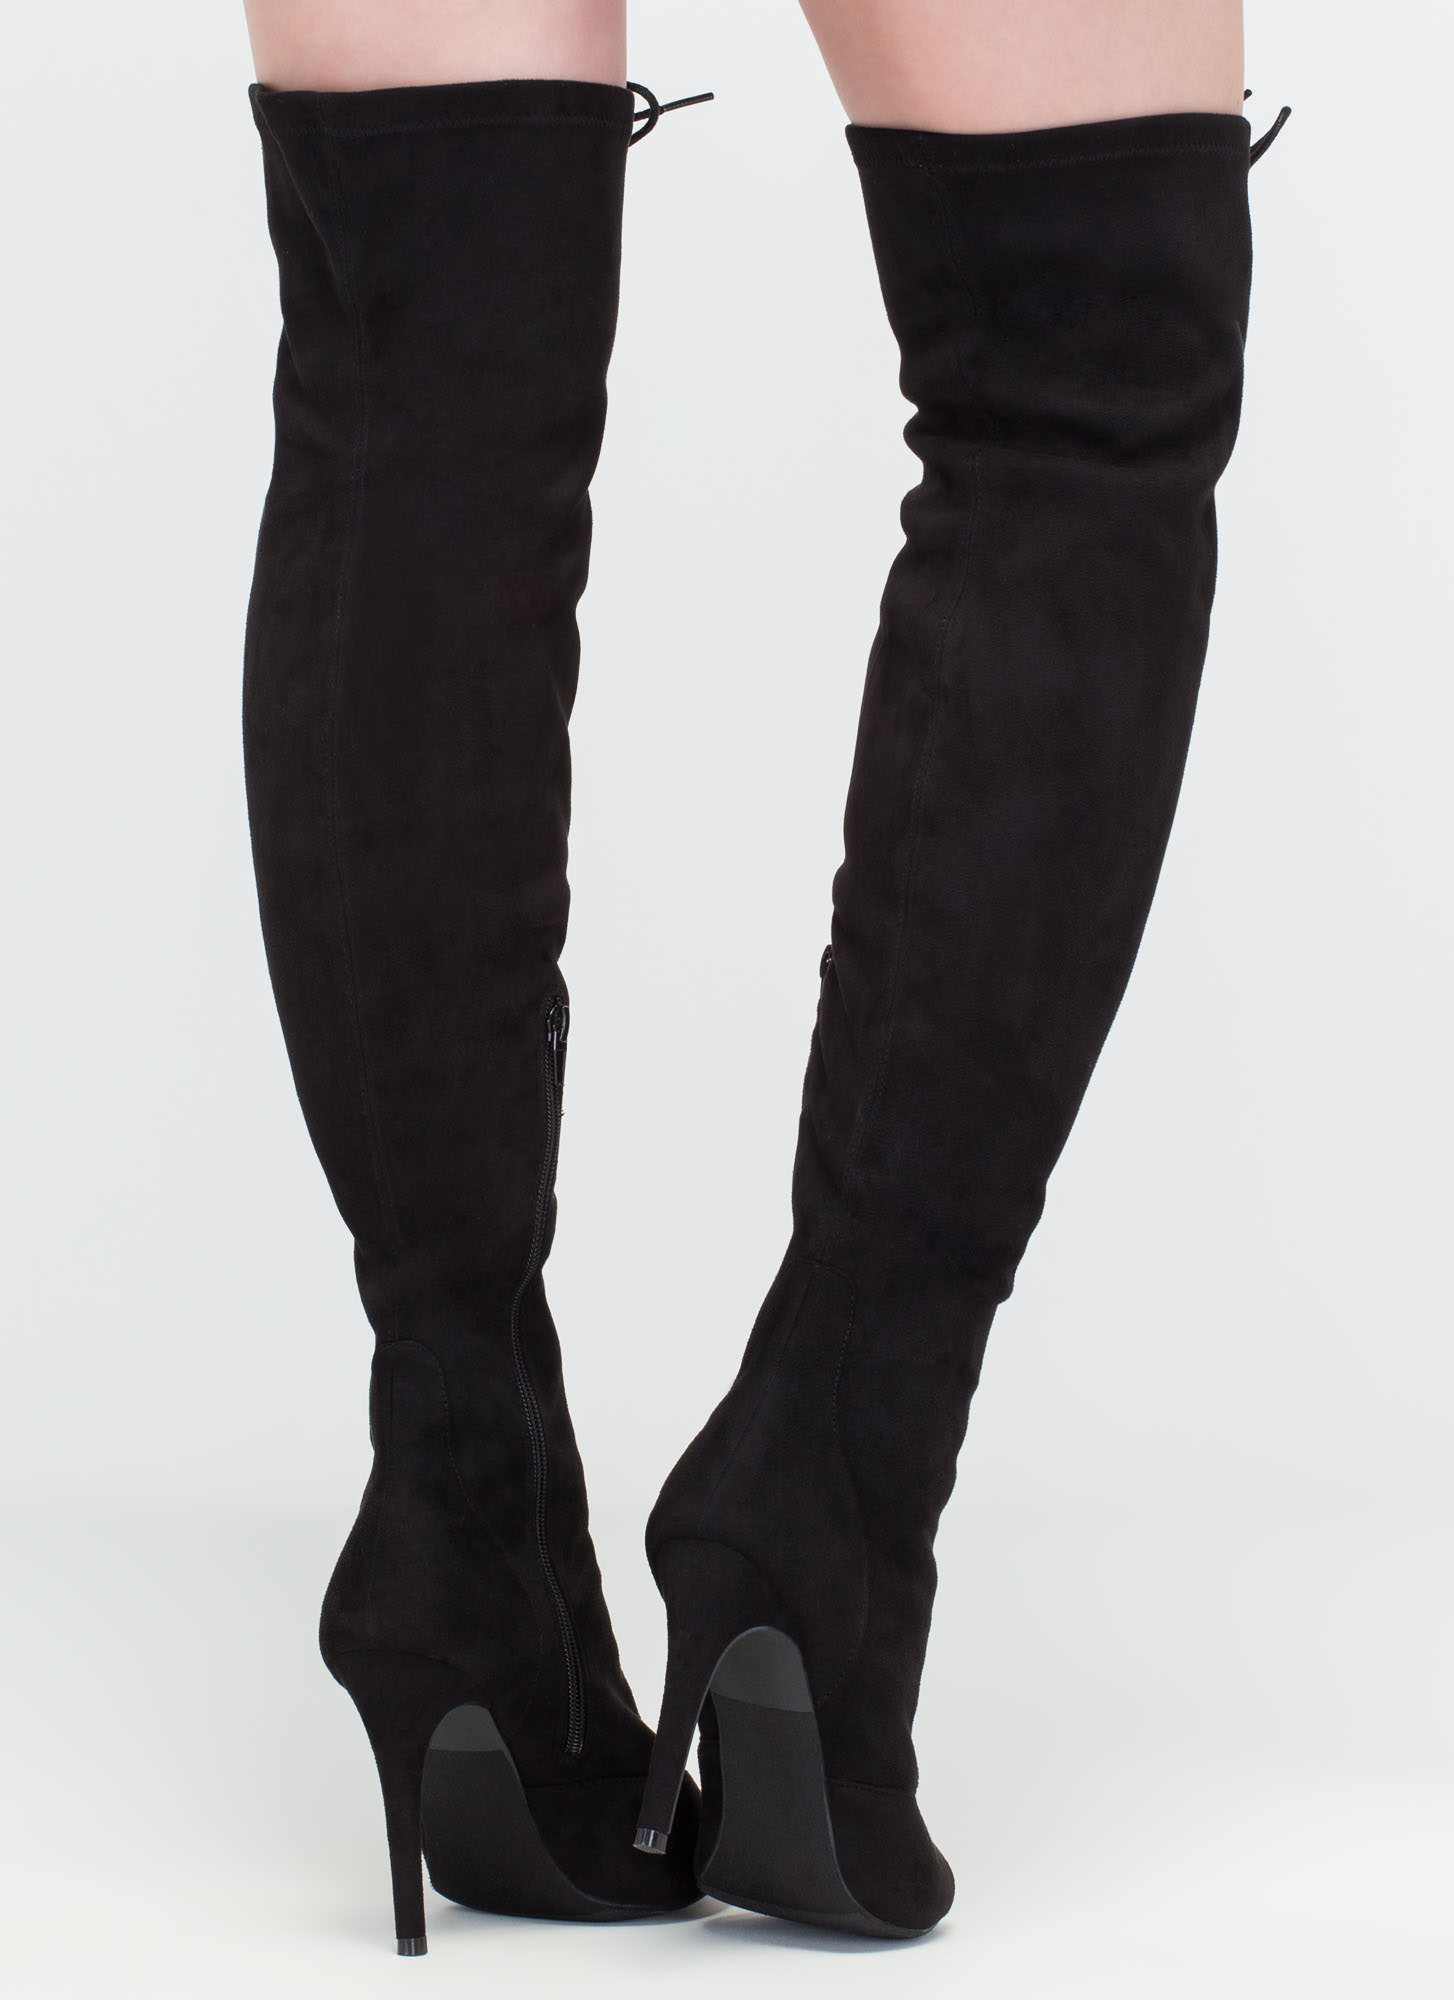 Leg Day Over-The-Knee Lace-Up Boots BLACK